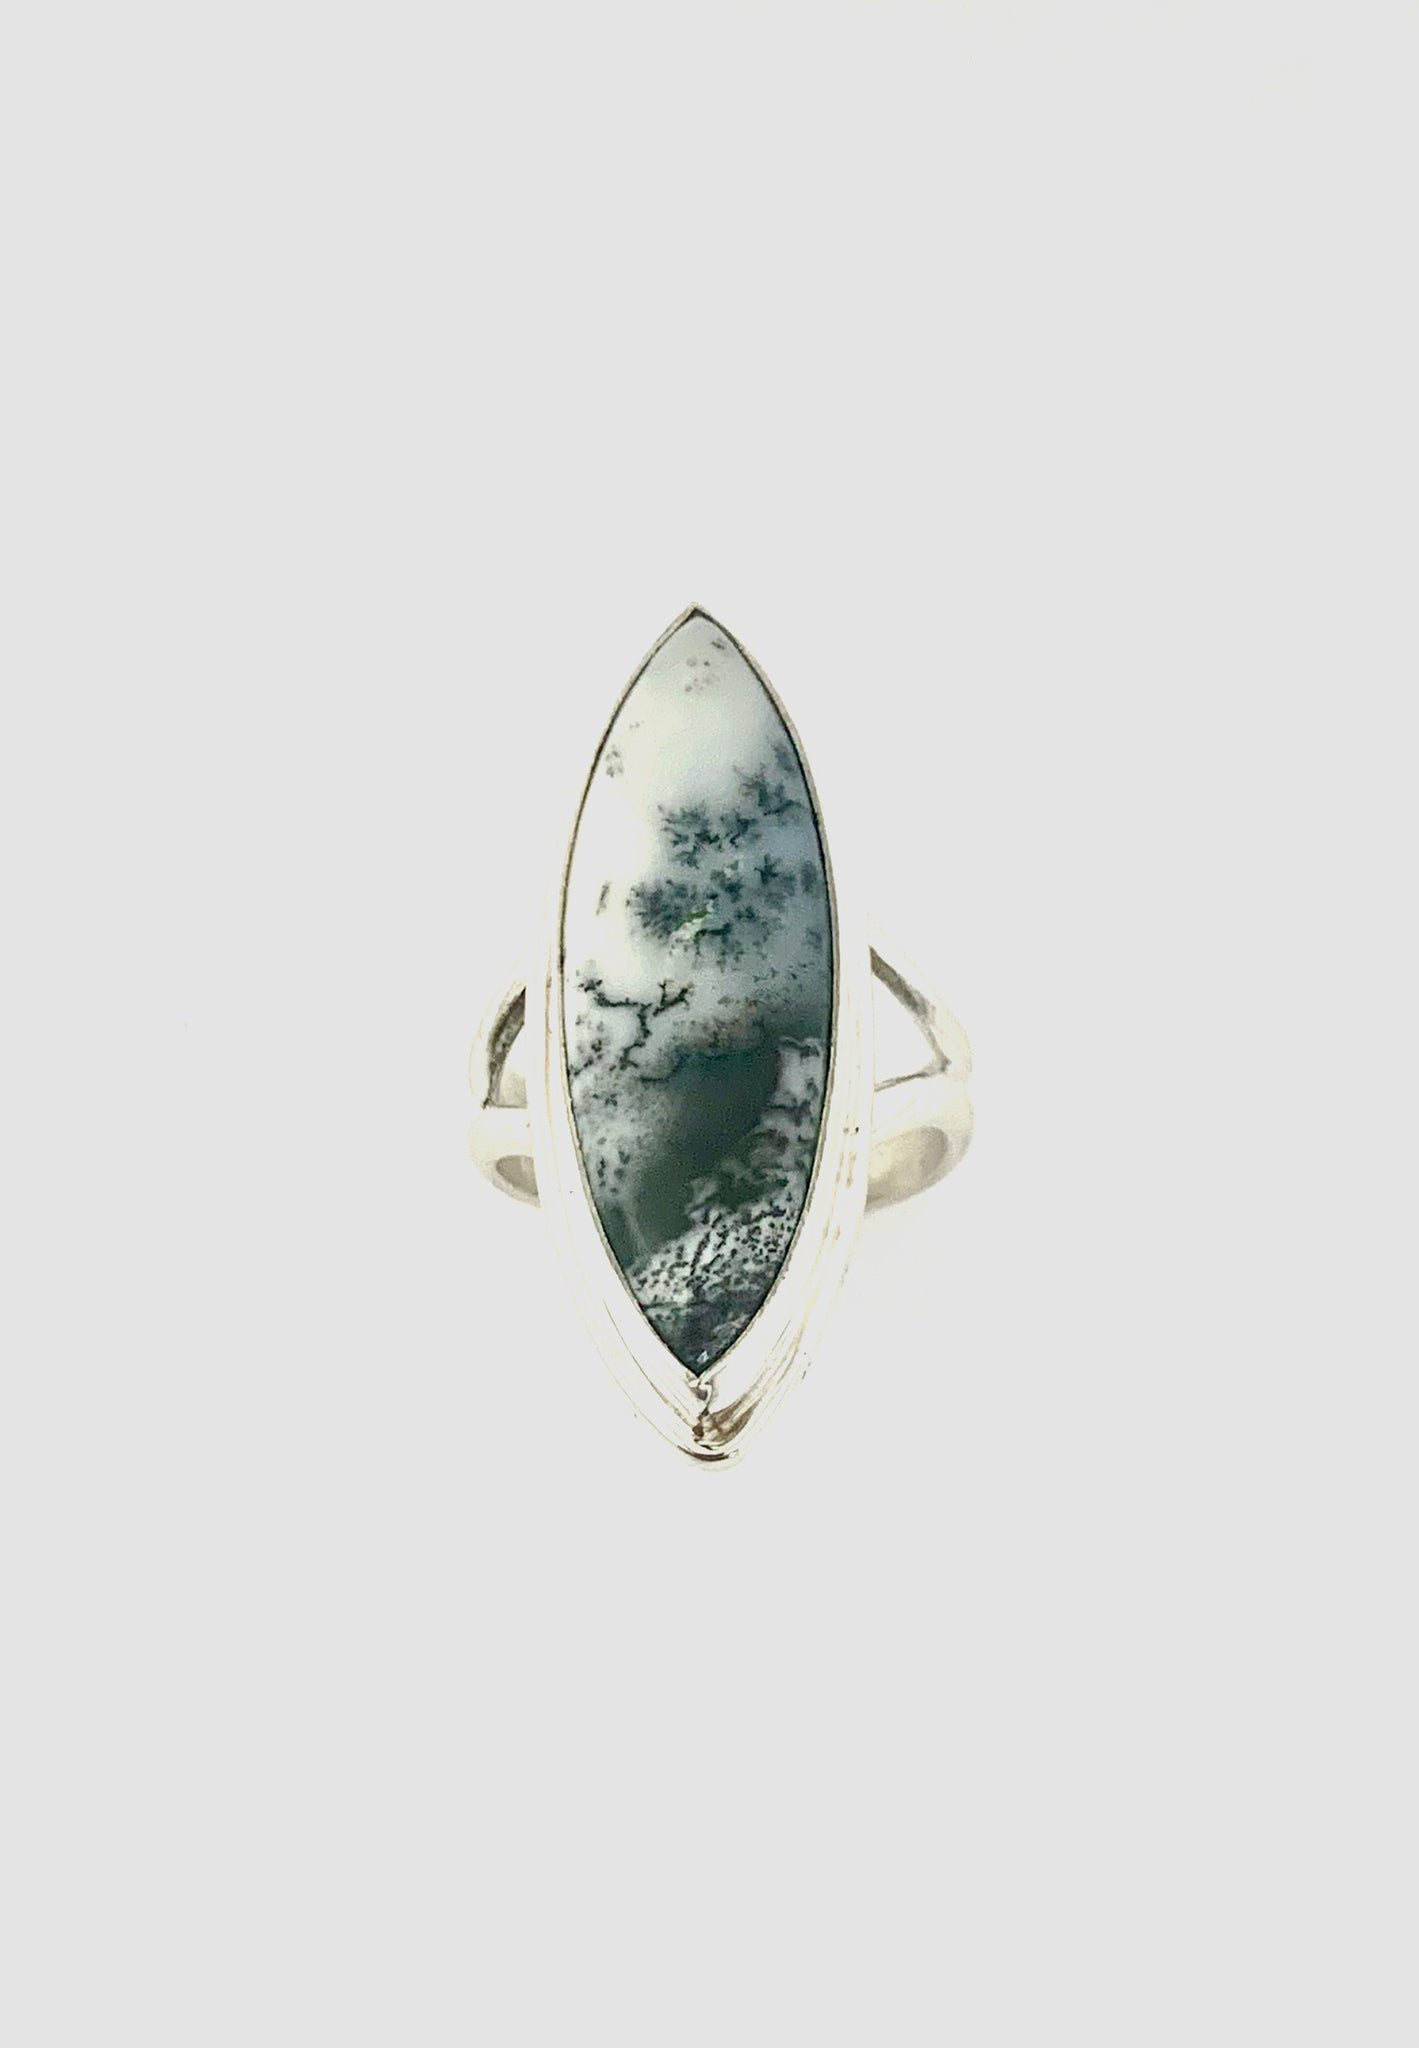 Dendritic Opal Ring, Black and White Stone Ring, Landscape Stone Ring, Womens Statement Ring in Sterling Silver